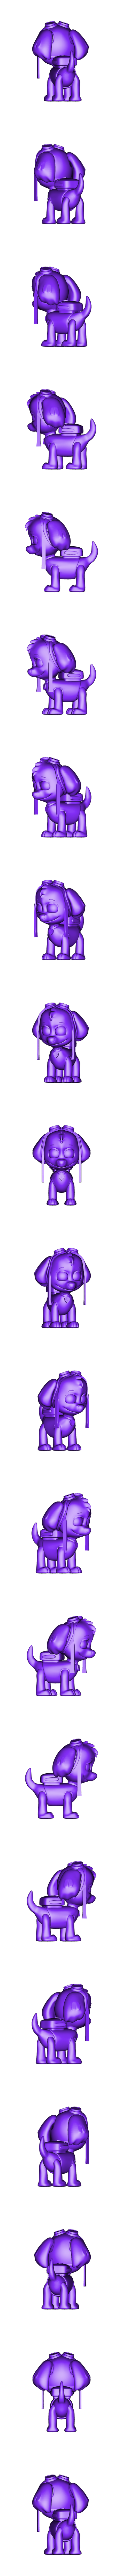 Skye Ferdig.obj Download free OBJ file Skye (Paw Patrol) • Object to 3D print, Gunnarf1986